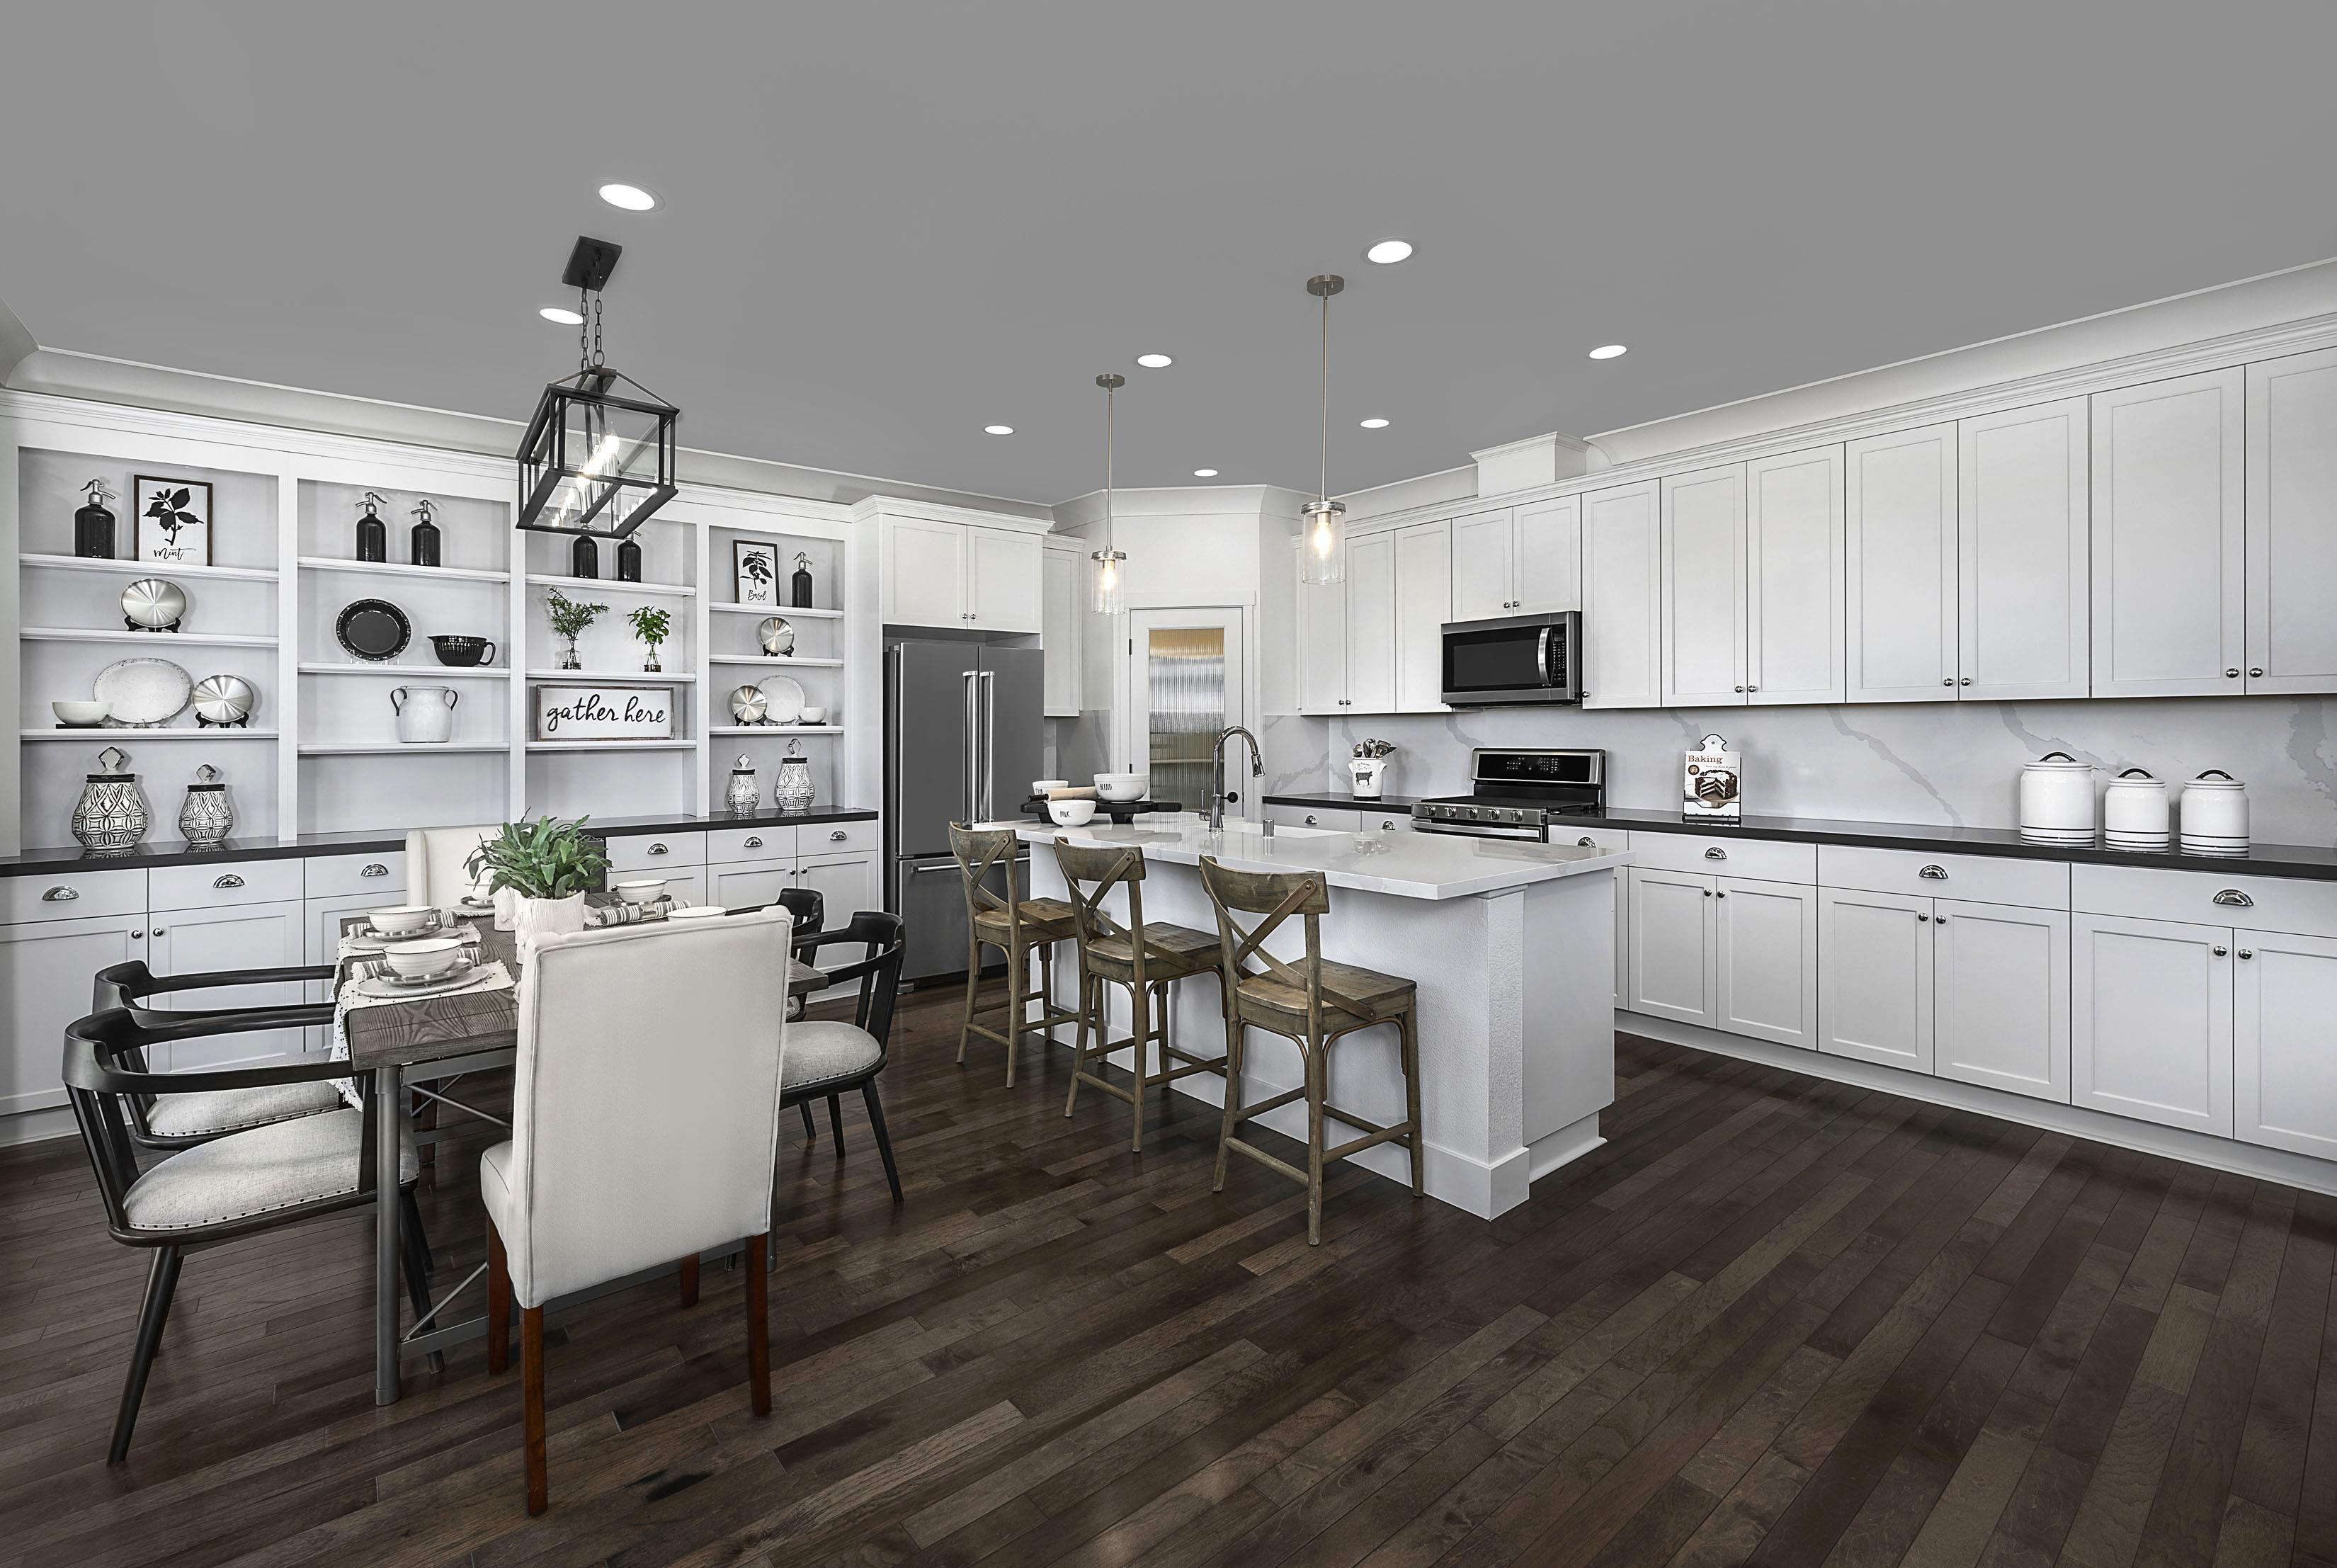 Kitchen featured in the Carousel Residence 3 By Kiper Homes in Santa Cruz, CA